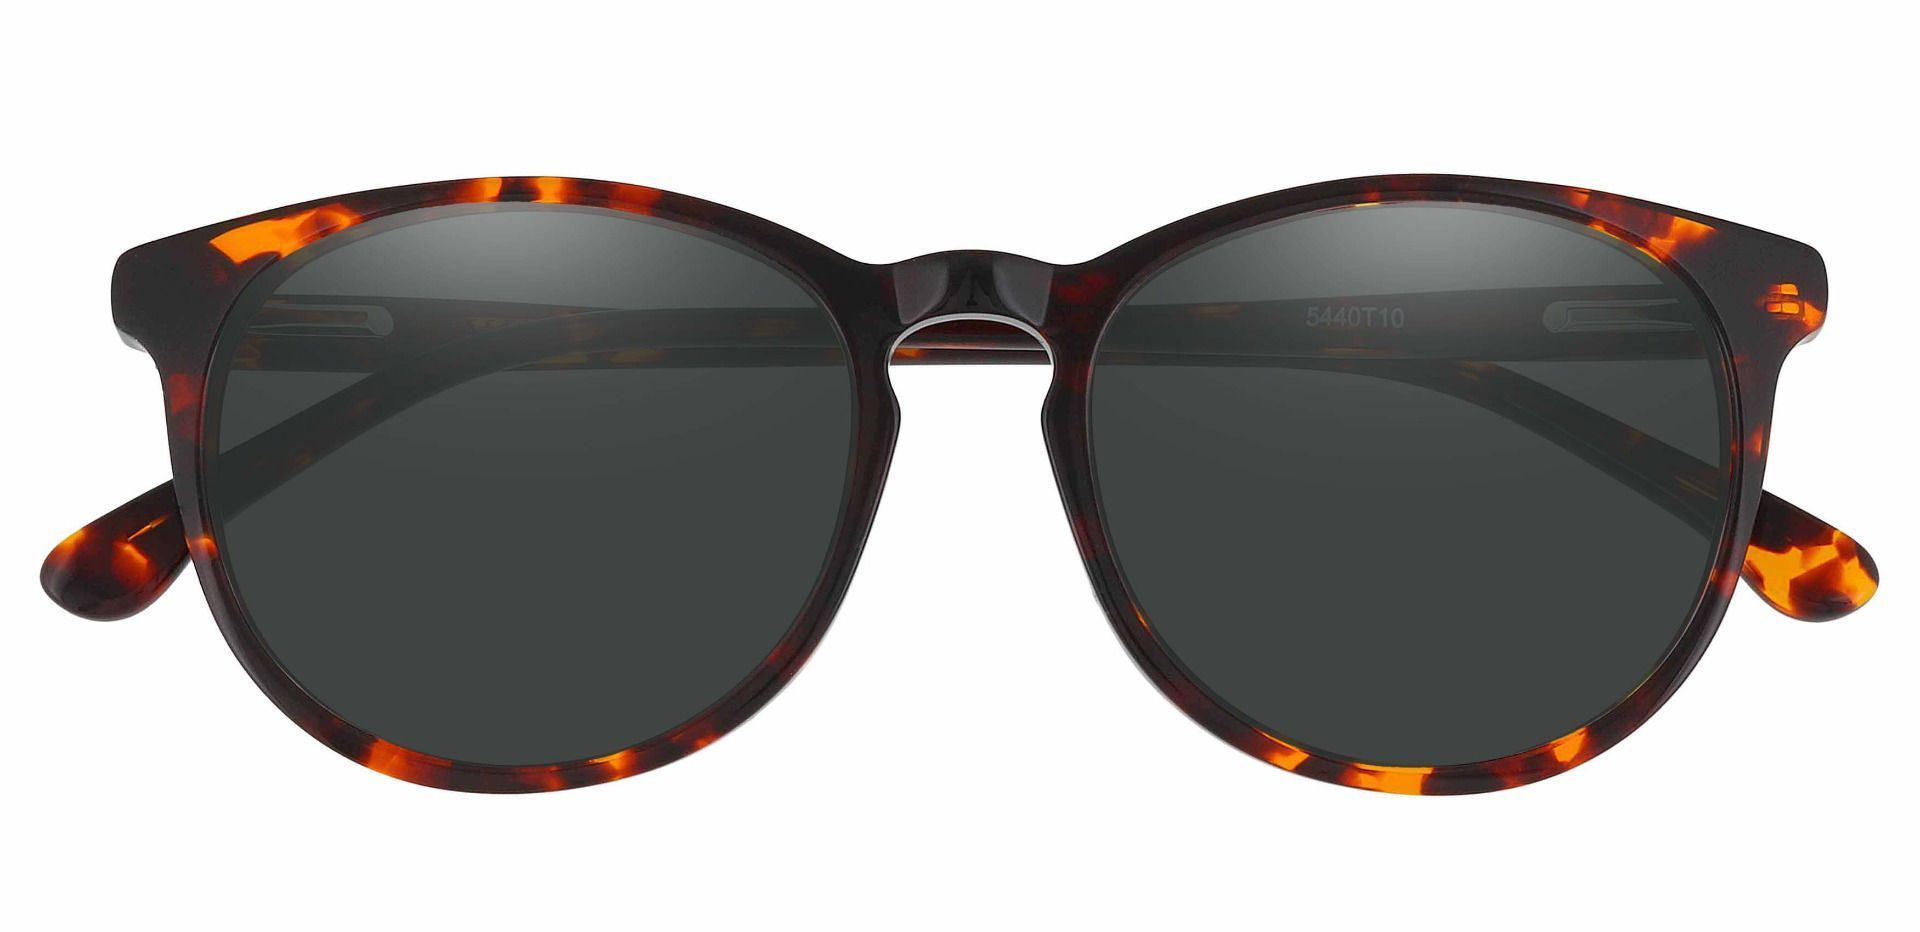 Carriage Round Lined Bifocal Sunglasses - Tortoise Frame With Gray Lenses